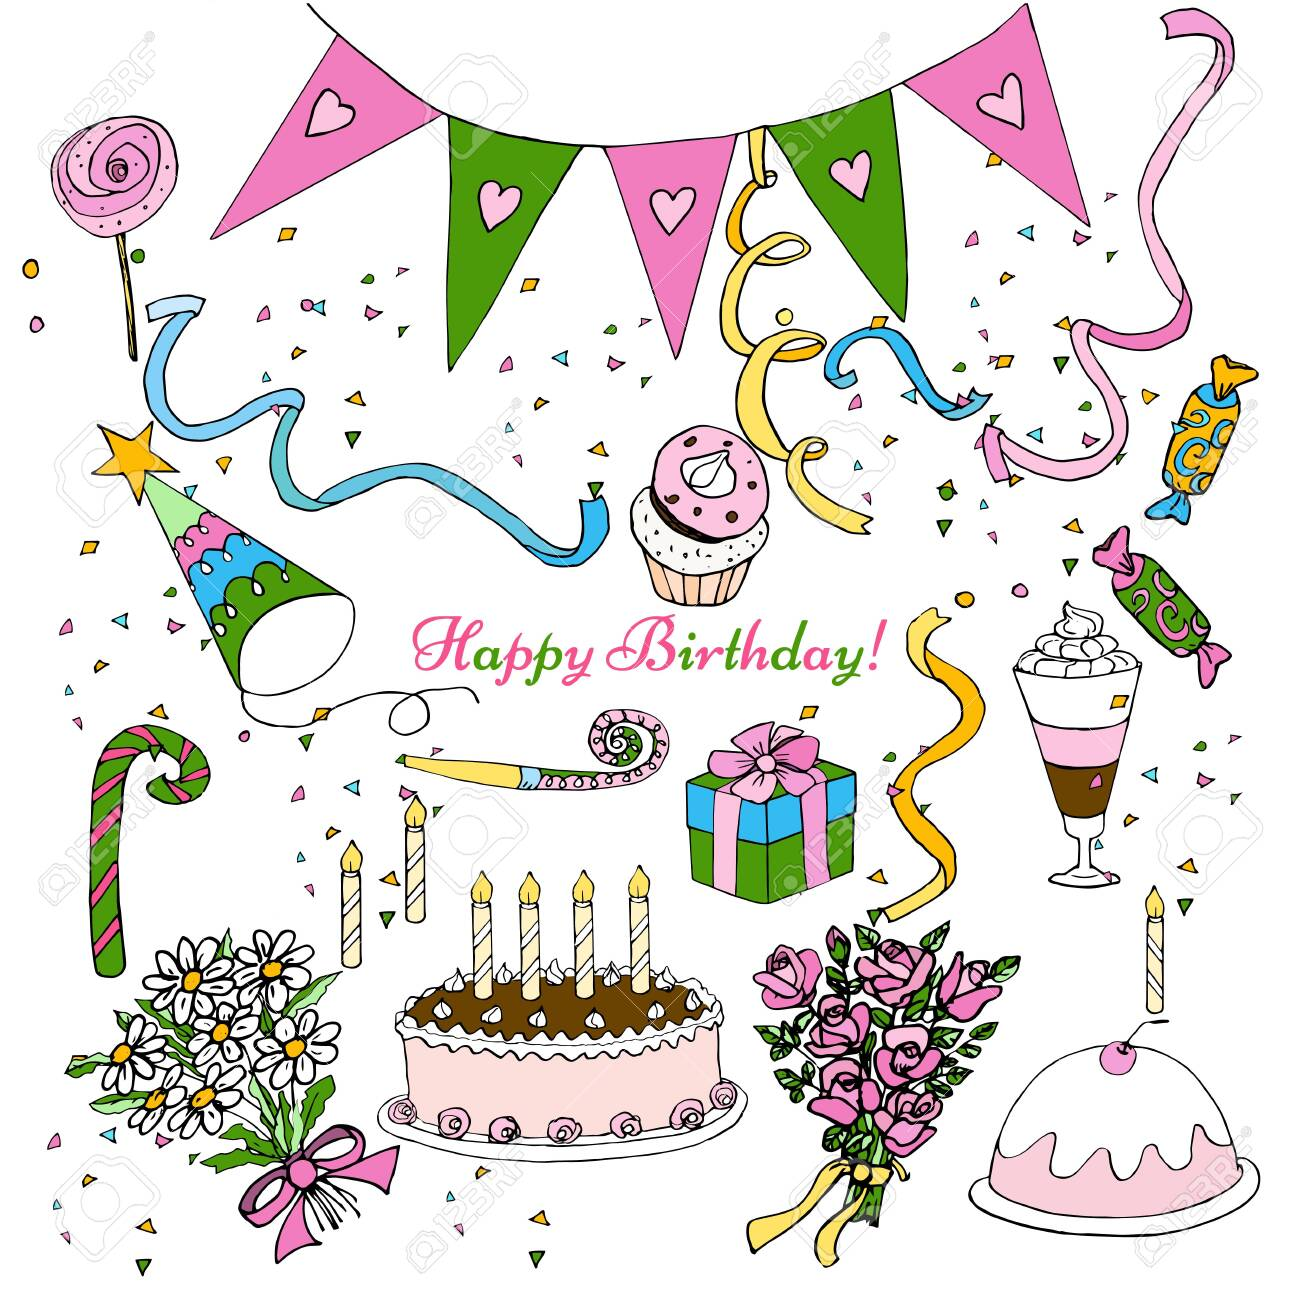 Hand Draw birthday party clipart, isolated doodle set design decoration - 122781244